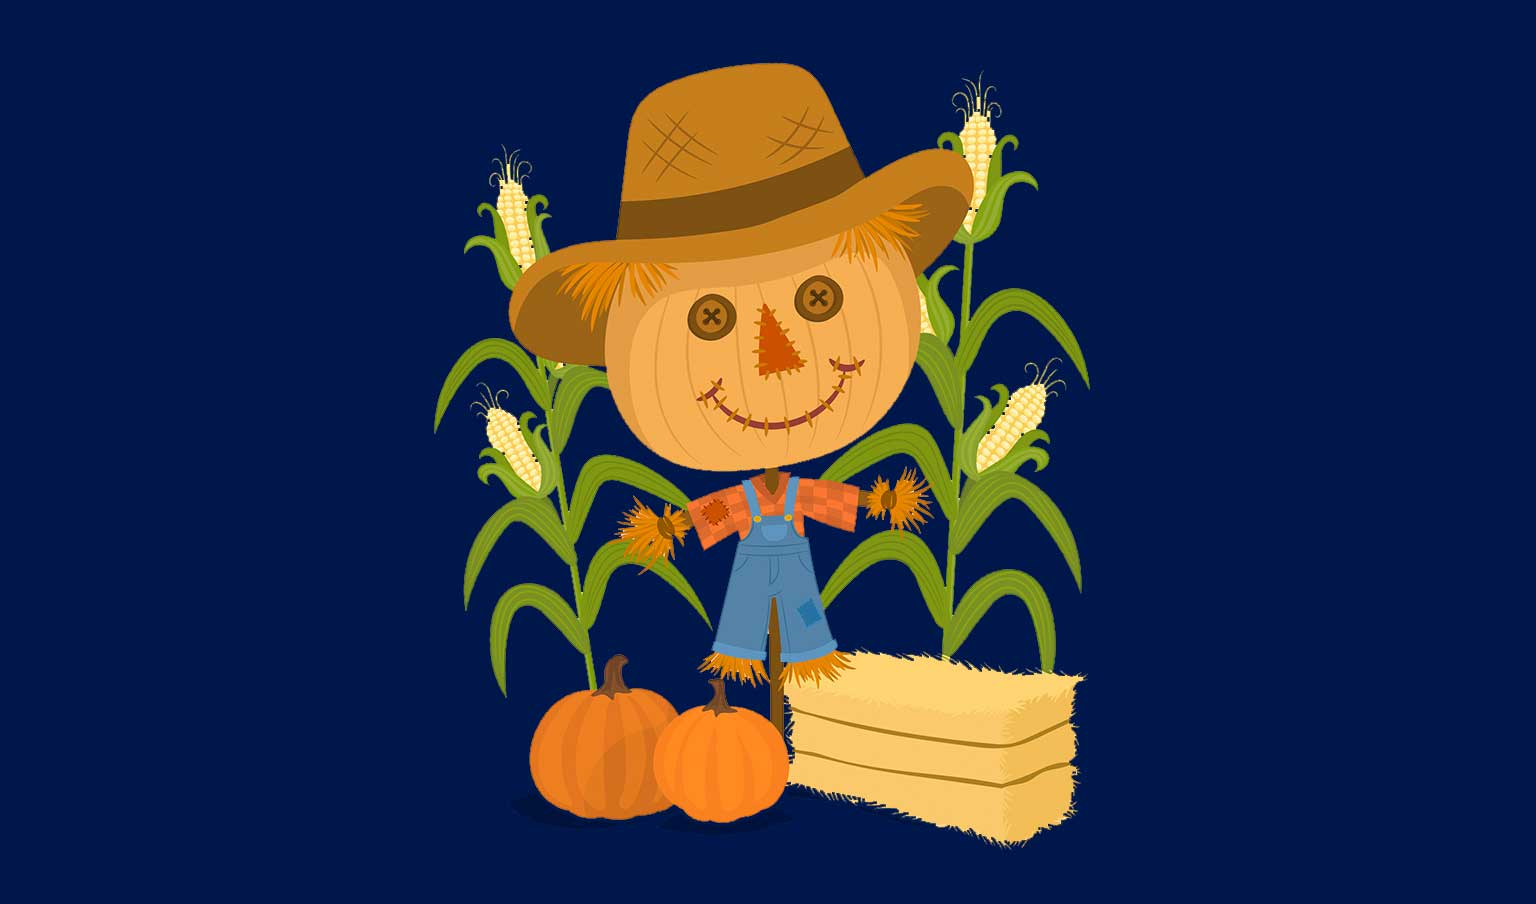 Pumpkin Patches near Vancouver WA represented by cute illustrated scarecrow with pumpkin head